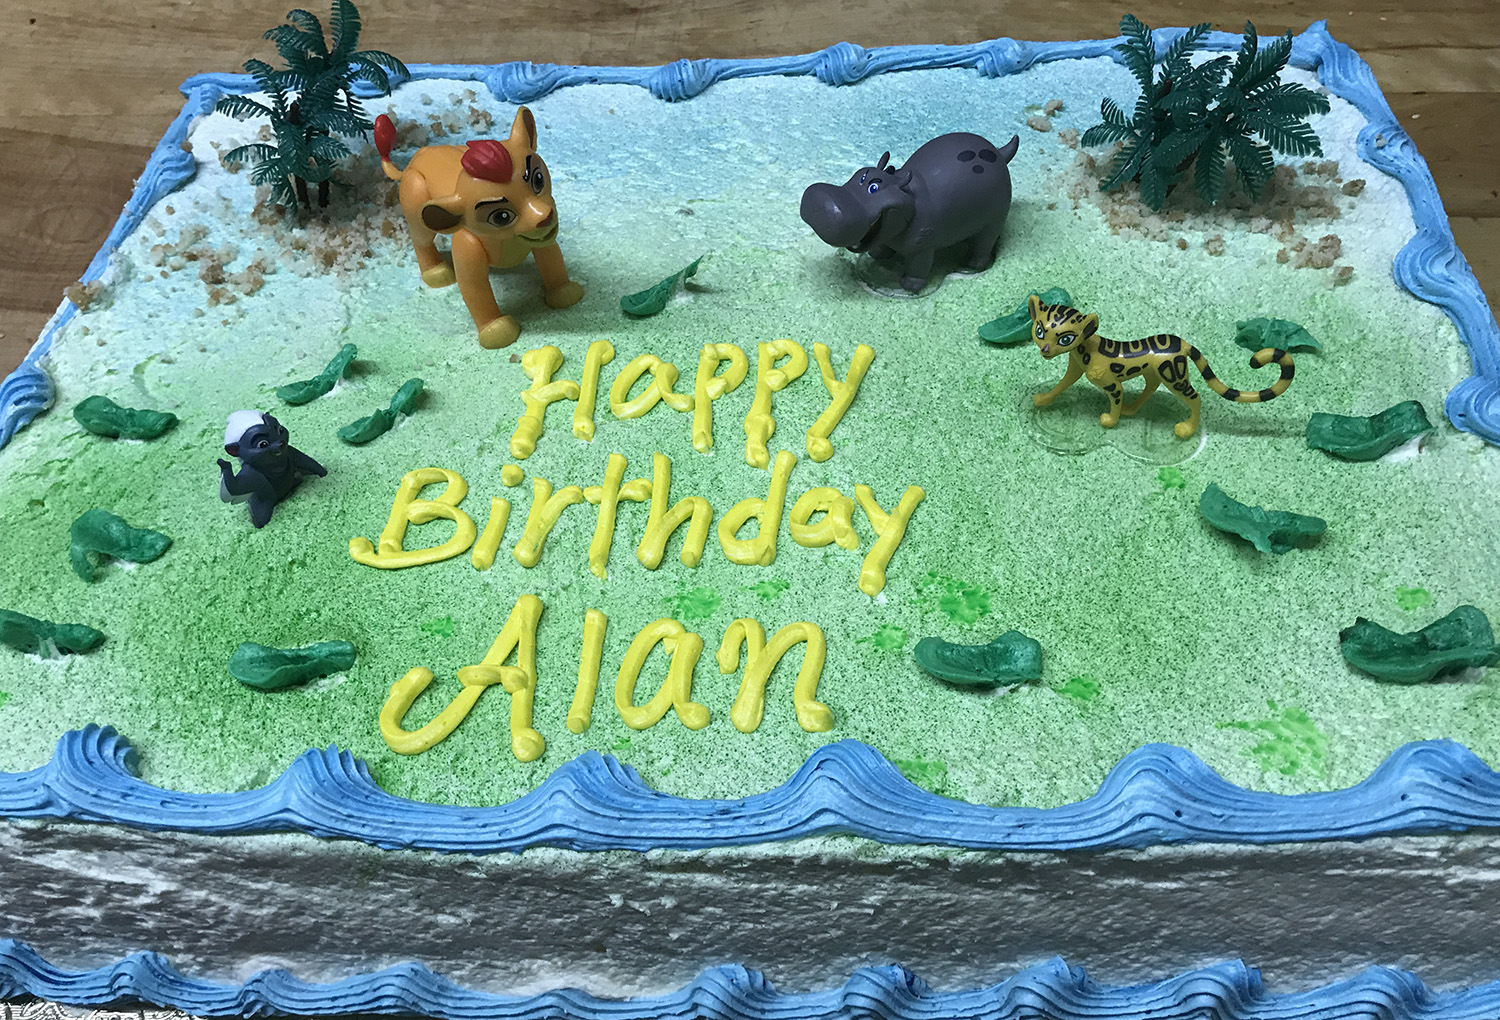 lion-king-cake-hmb-bakery.jpg